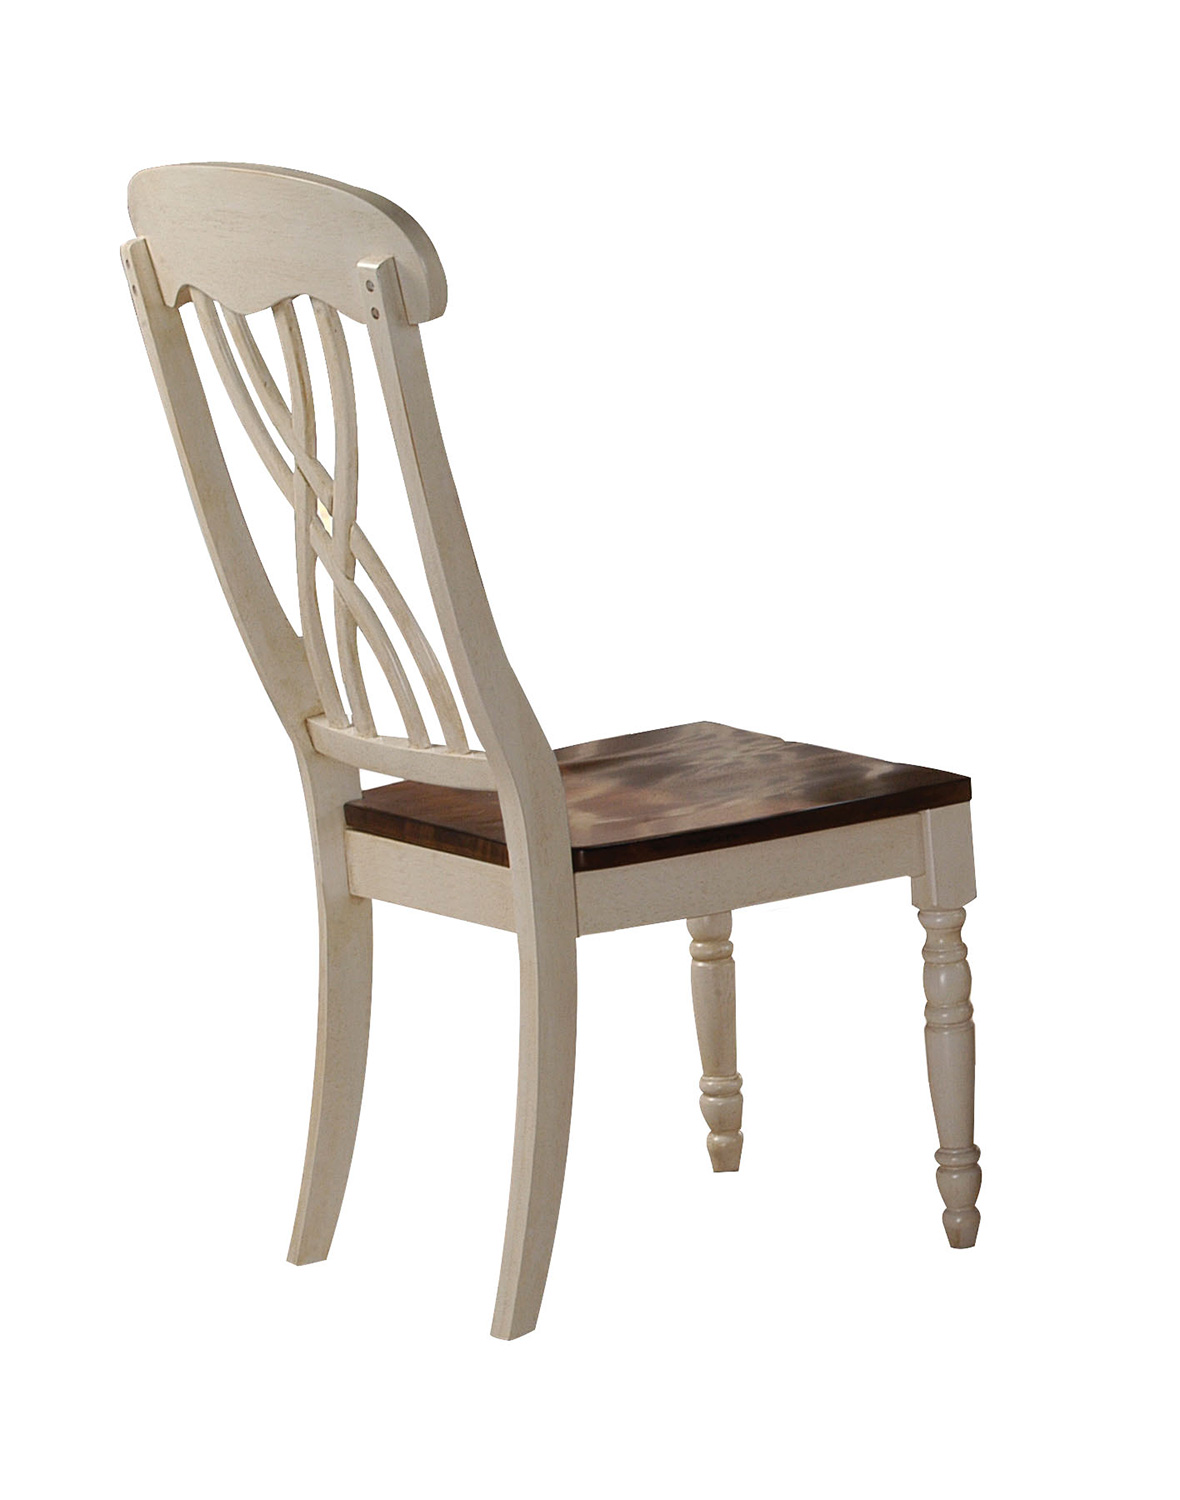 Acme Dylan Side Chair - Buttermilk/Oak